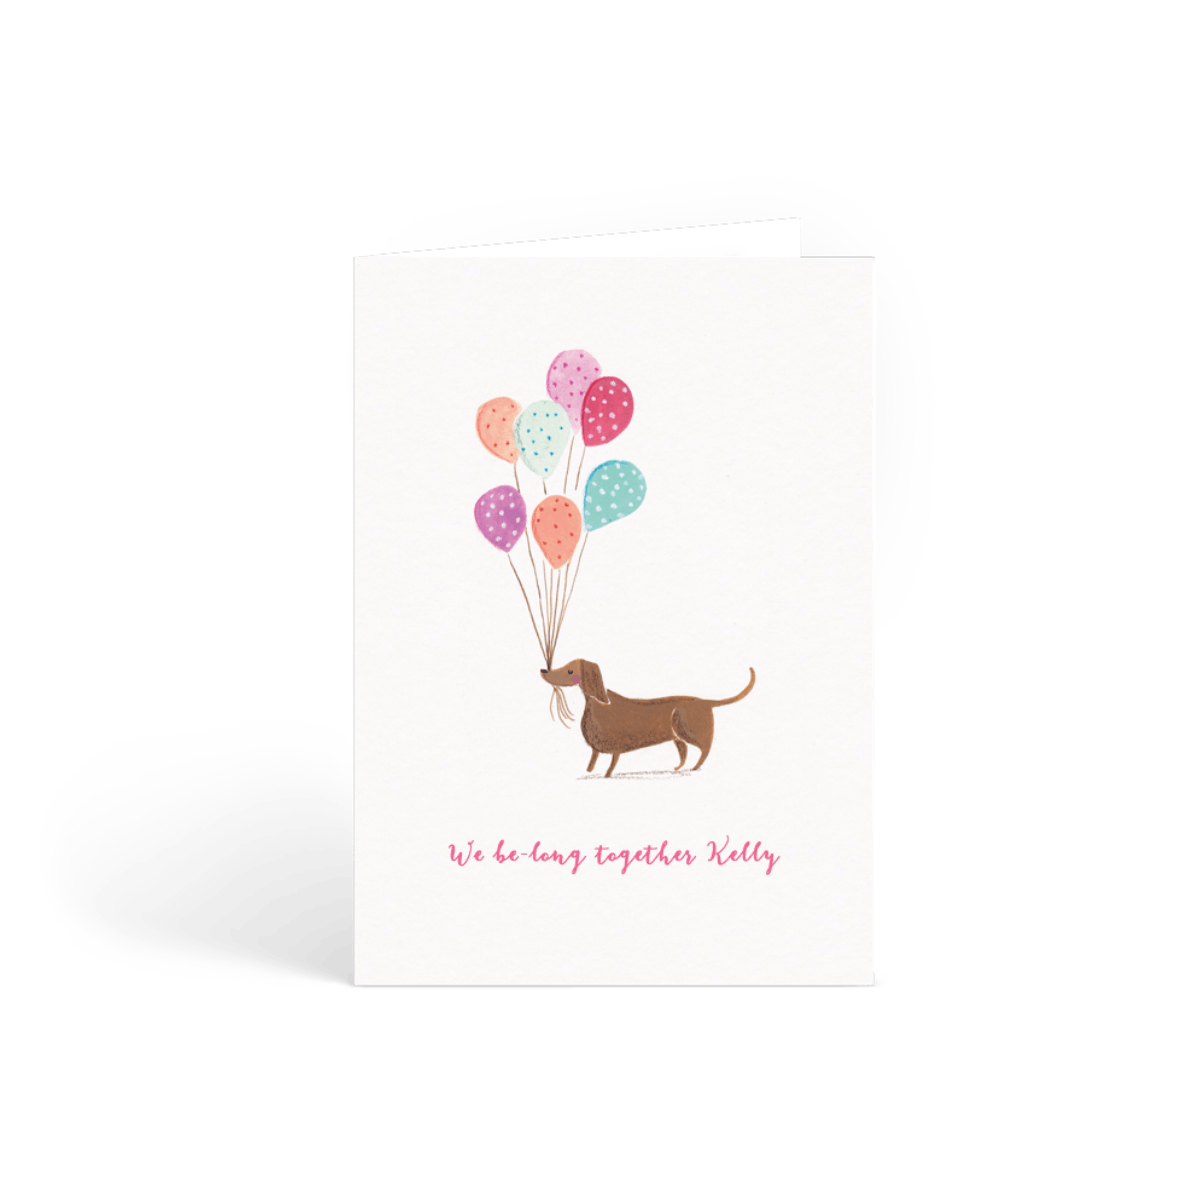 Https%3a%2f%2fwww.papier.com%2fproduct image%2f16407%2f2%2fdachshund with balloons 4335 front 1484653914.png?ixlib=rb 1.1